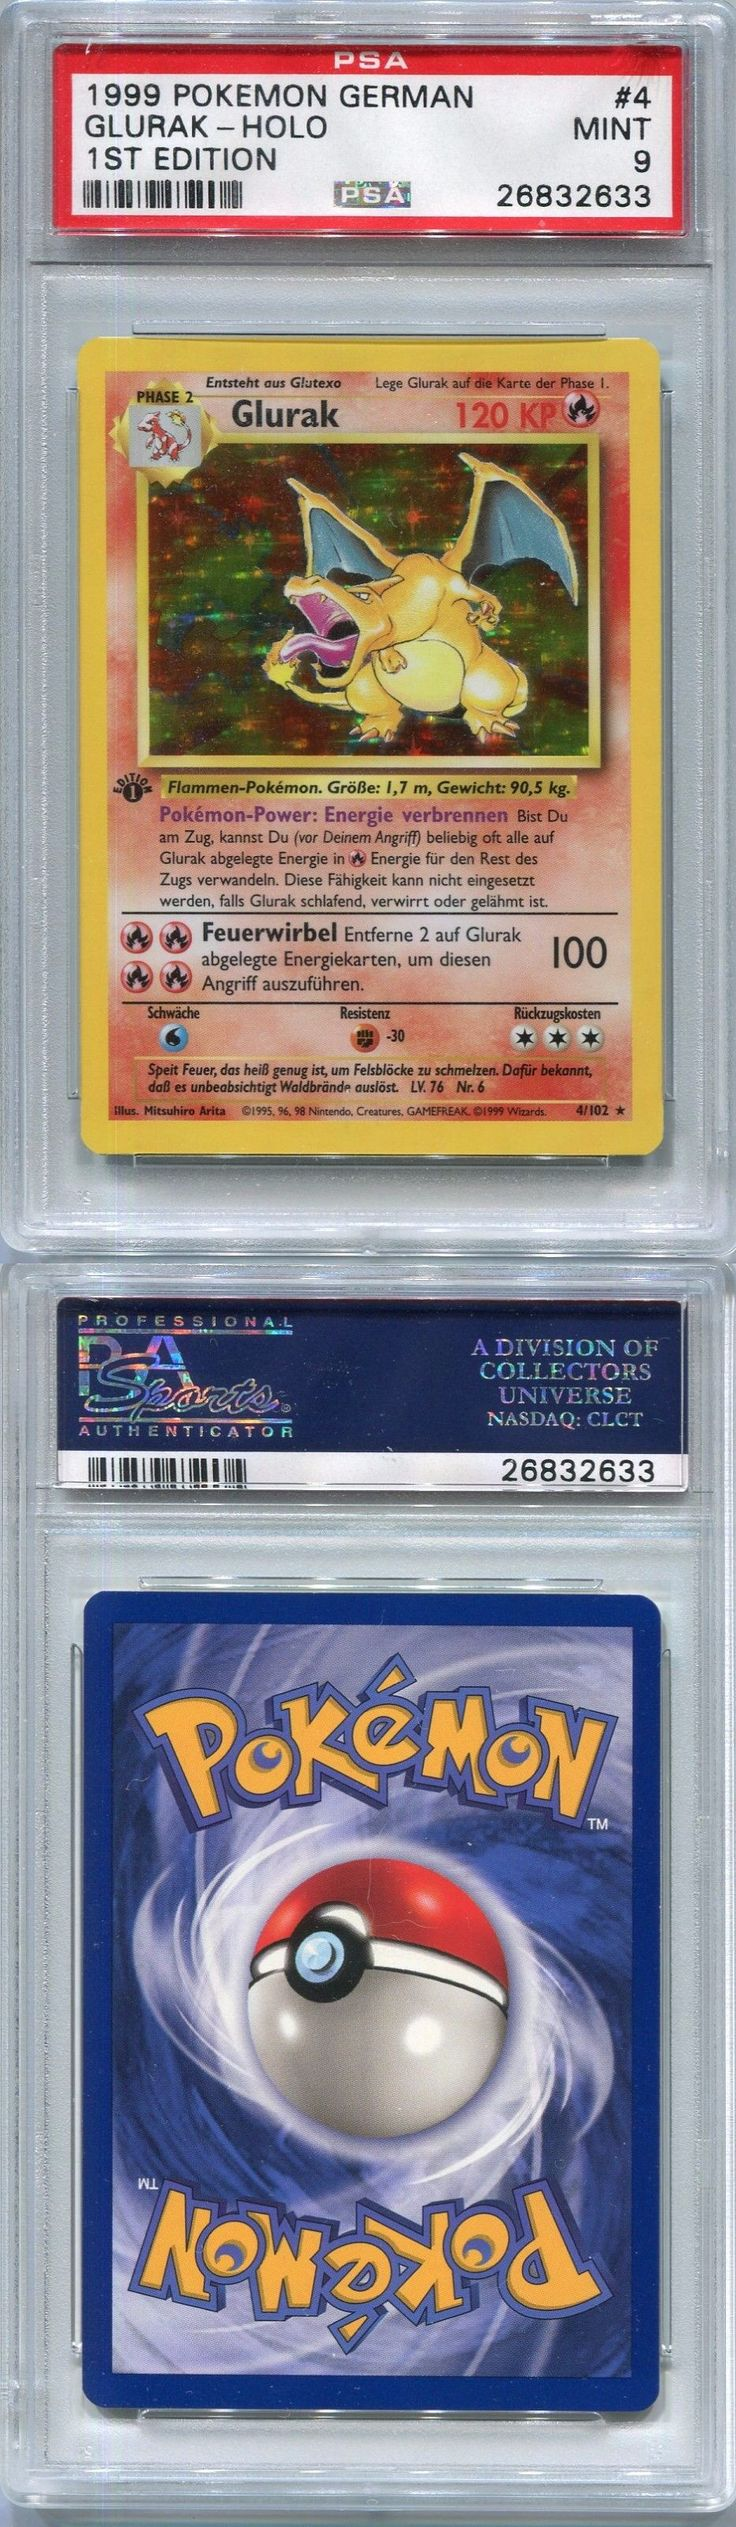 Pok mon Individual Cards 2611: Pokemon Card German 1St Edition Glurak (Charizard) Base Set 4 102, Psa 9 Mint -> BUY IT NOW ONLY: $200 on eBay!